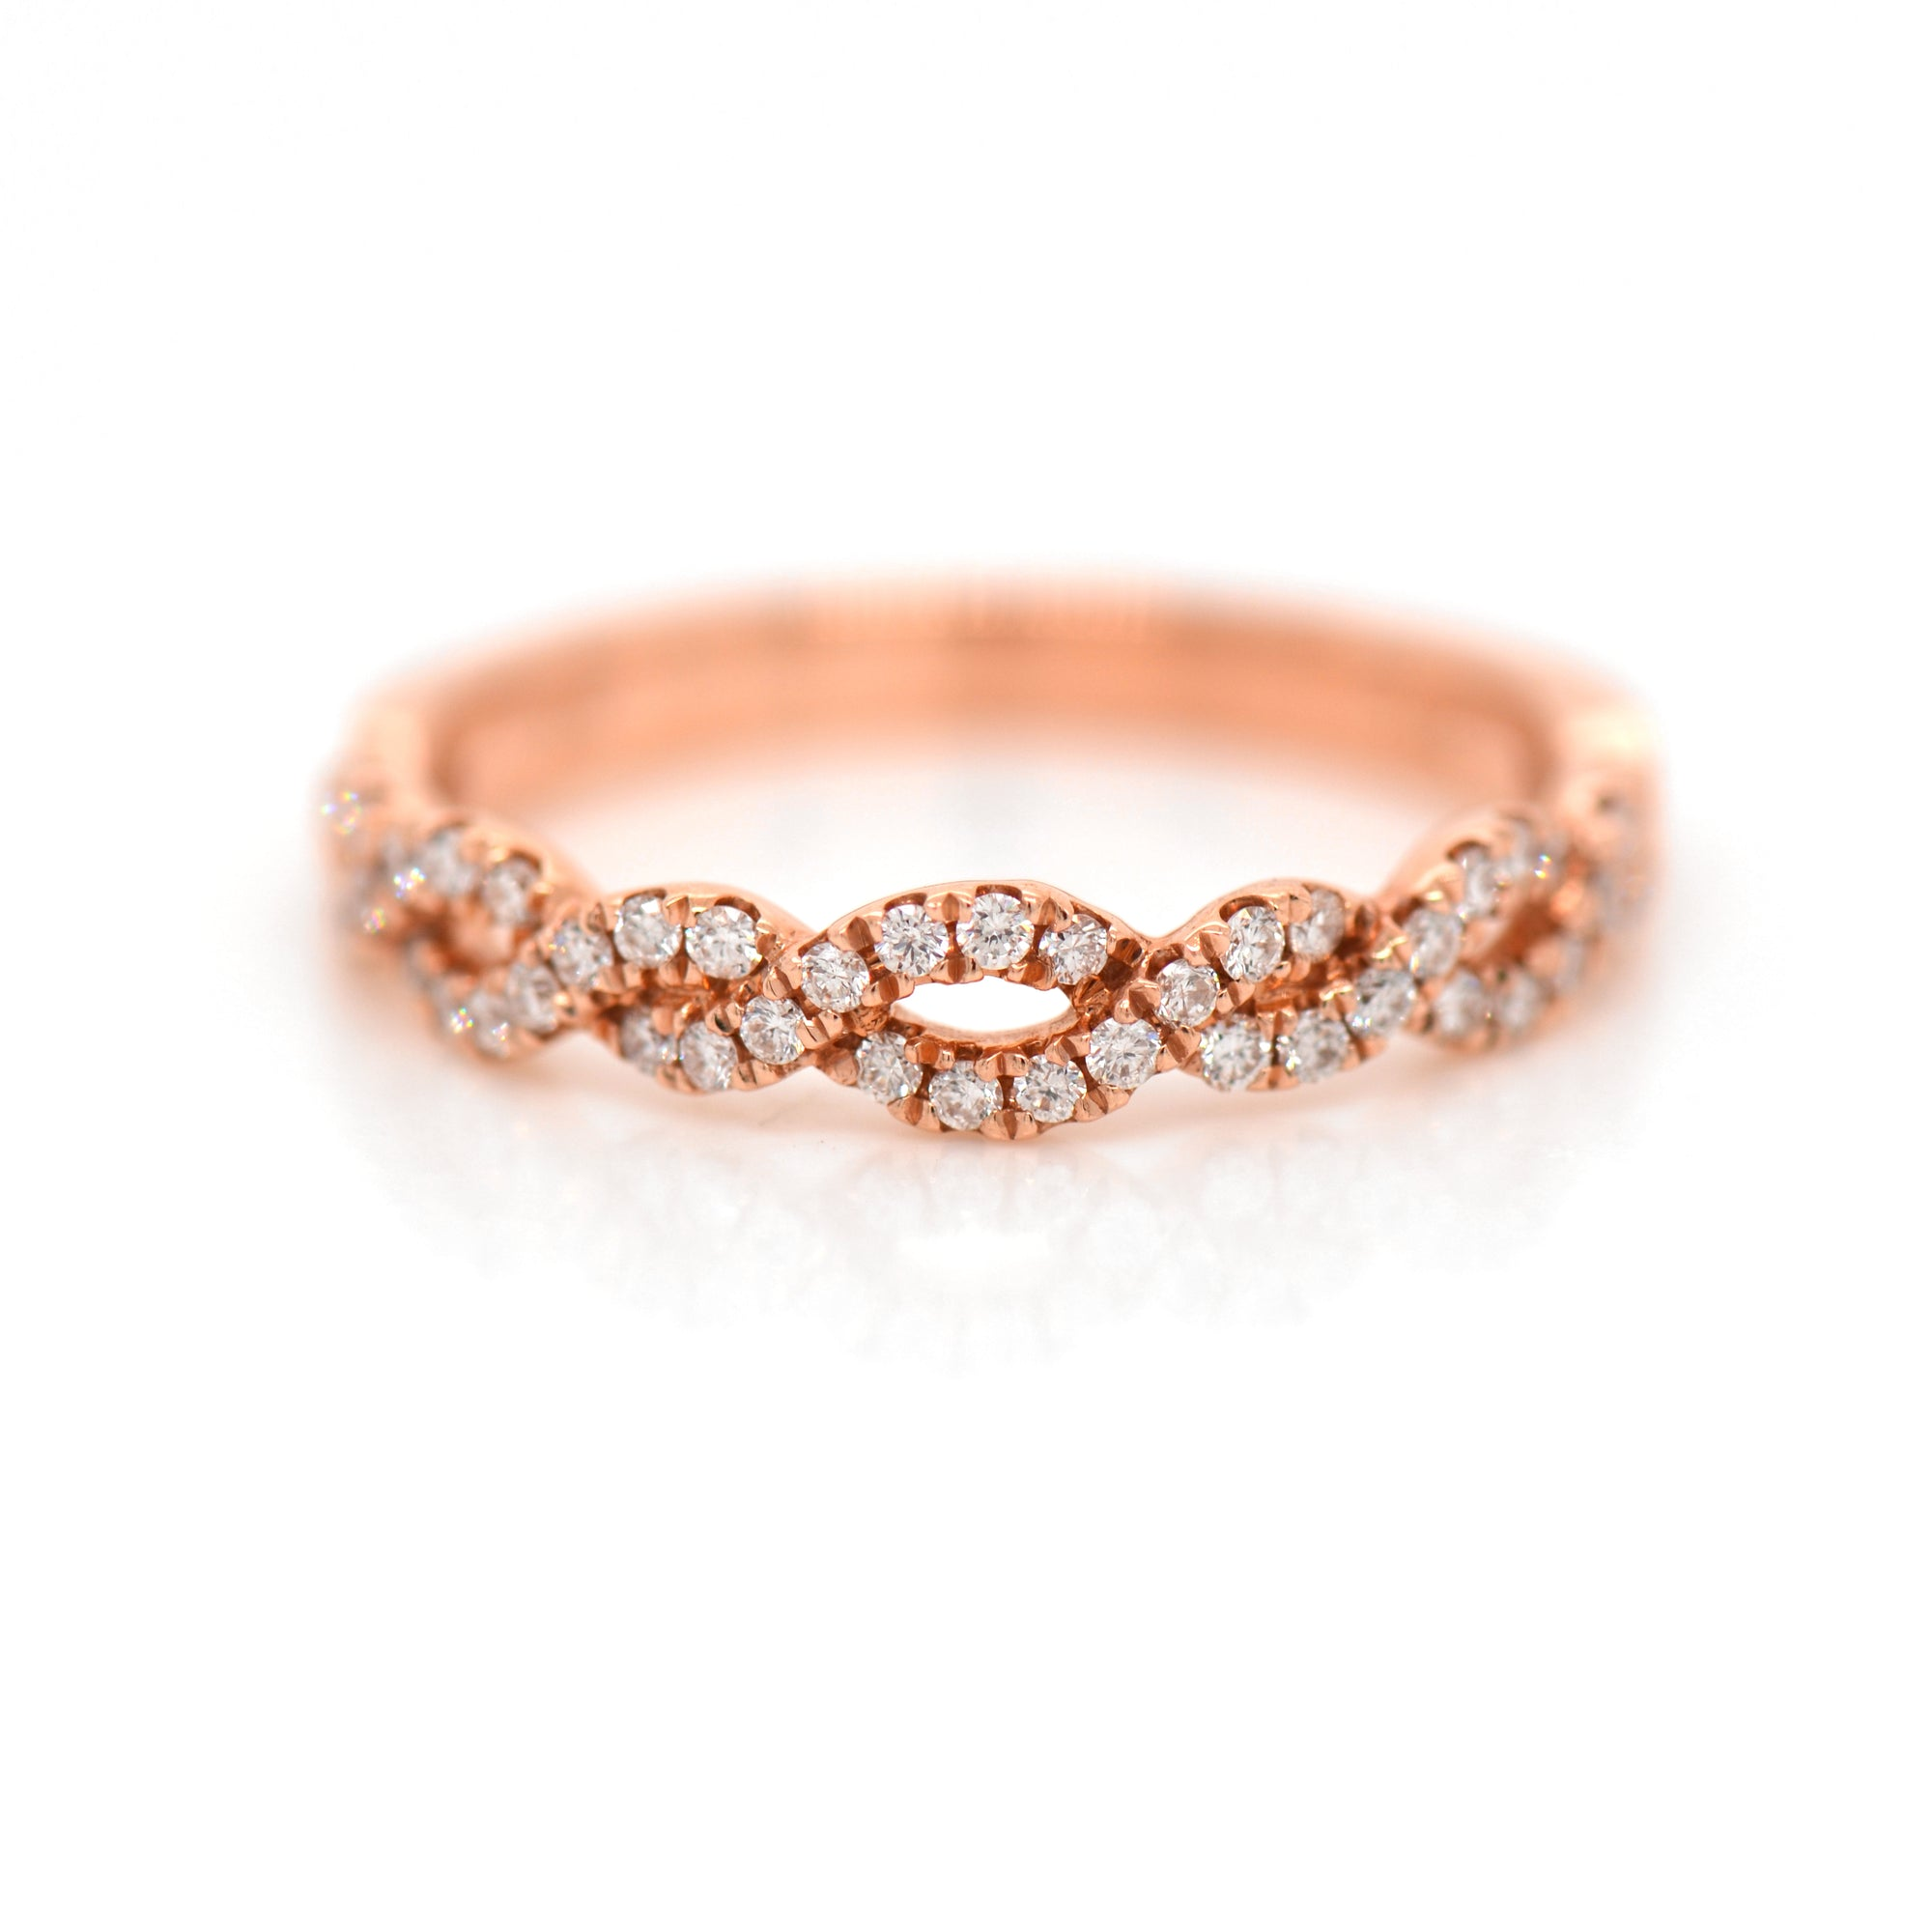 14K rose gold diamond band featuring round brilliant diamonds weighing a total of 0.26 carats set in an interwoven twist design.